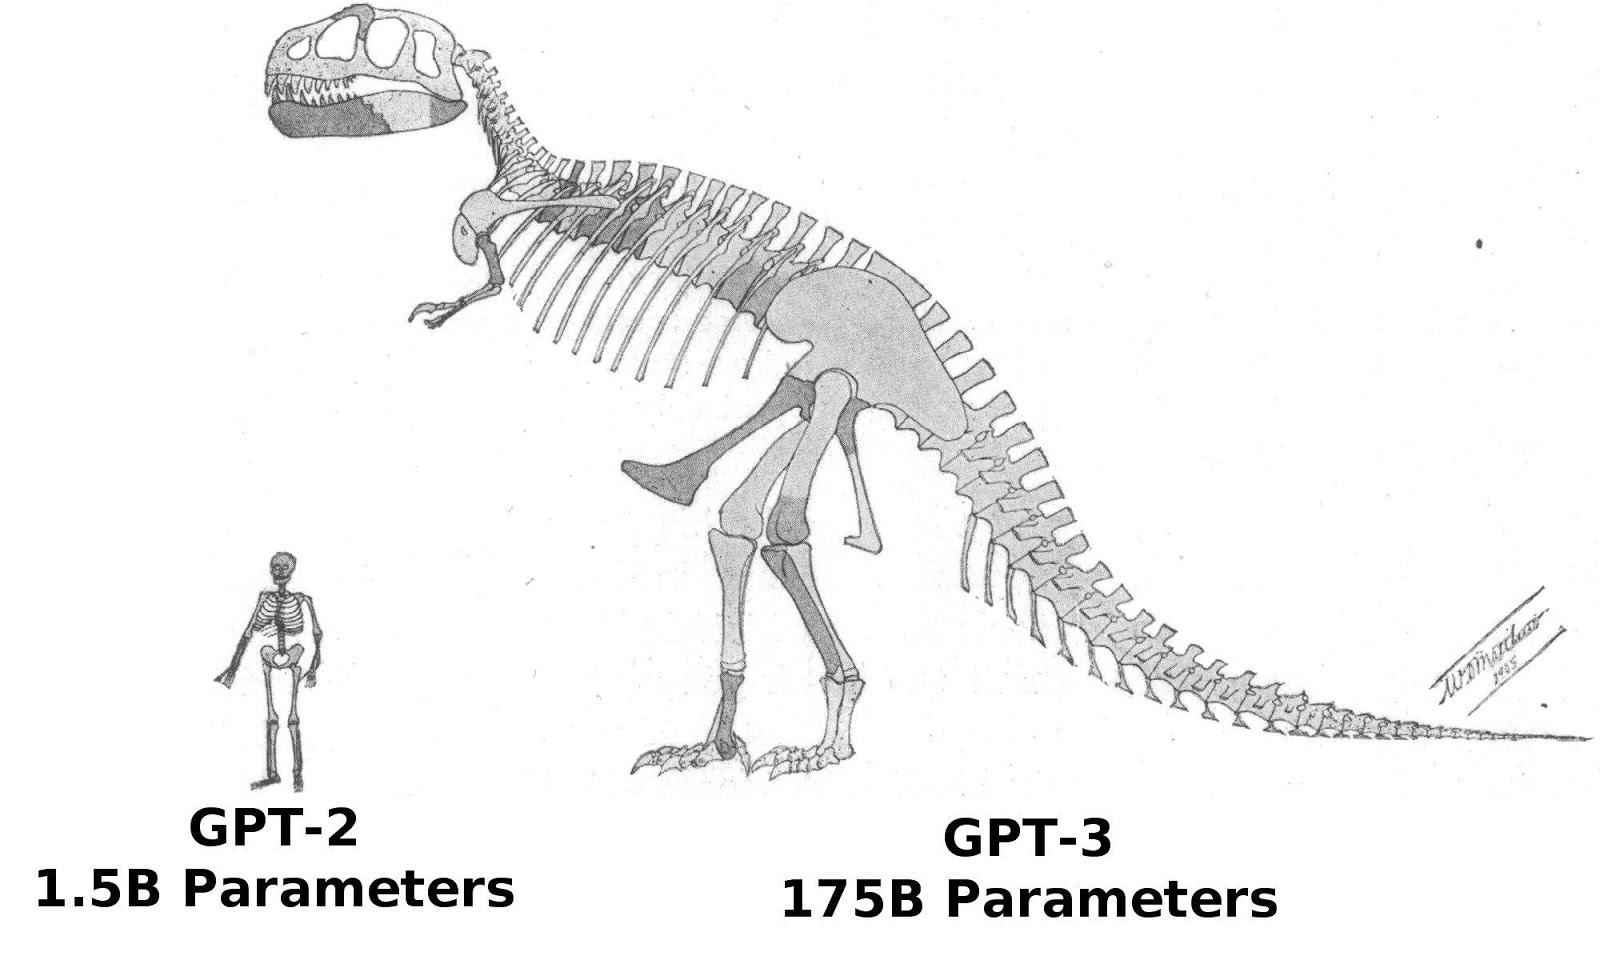 Approximate size comparison of GPT-2